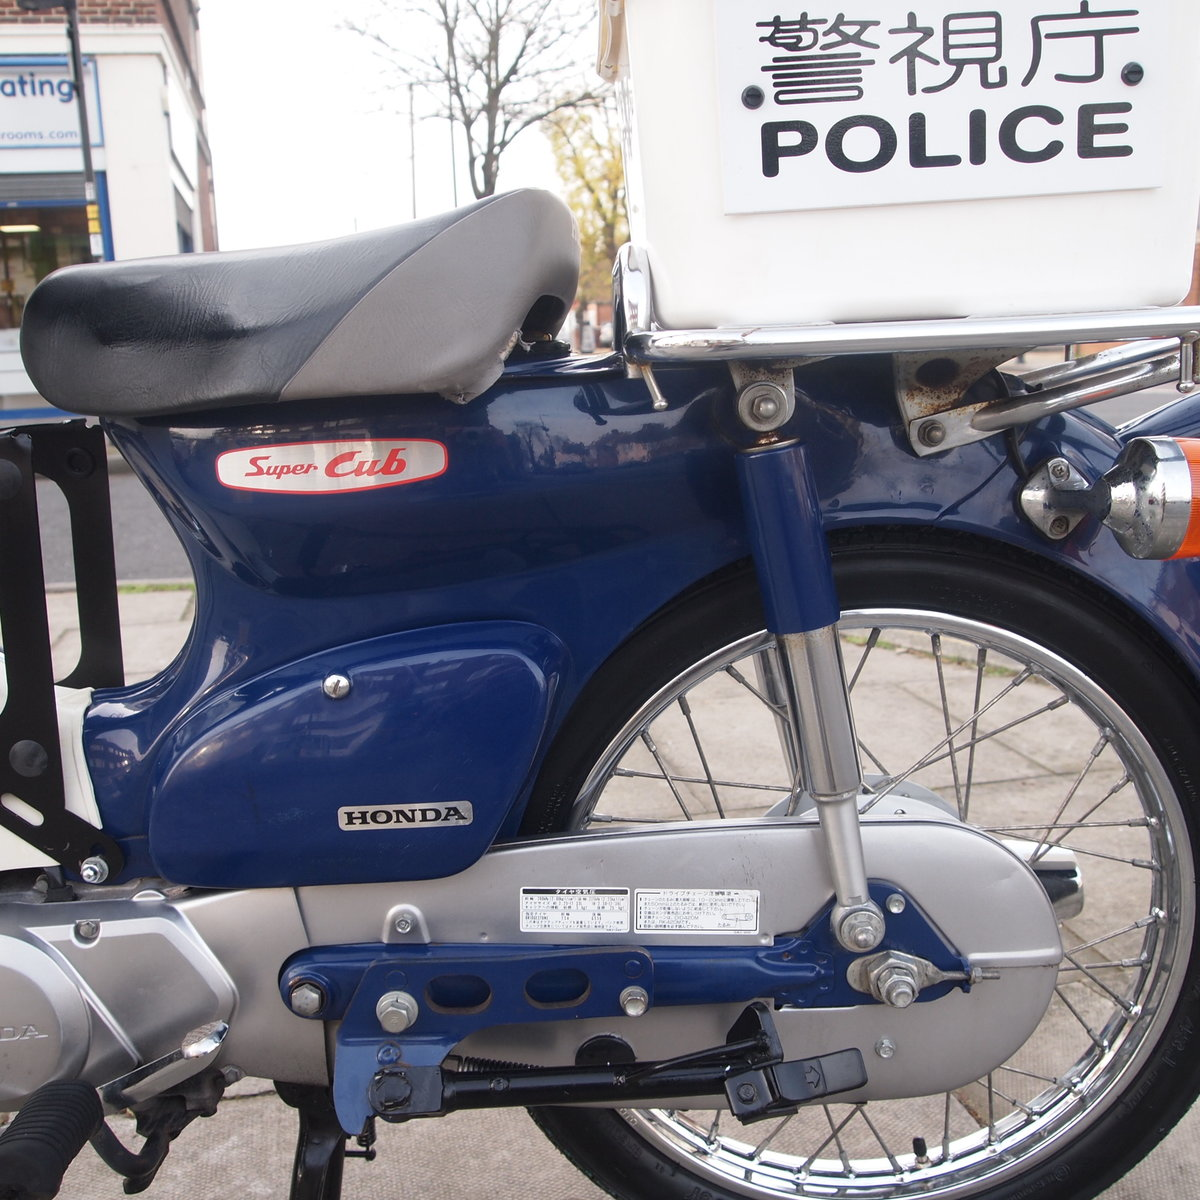 2007 C50 Tokyo Airport Police Patrol Super Cub. For Sale (picture 5 of 6)